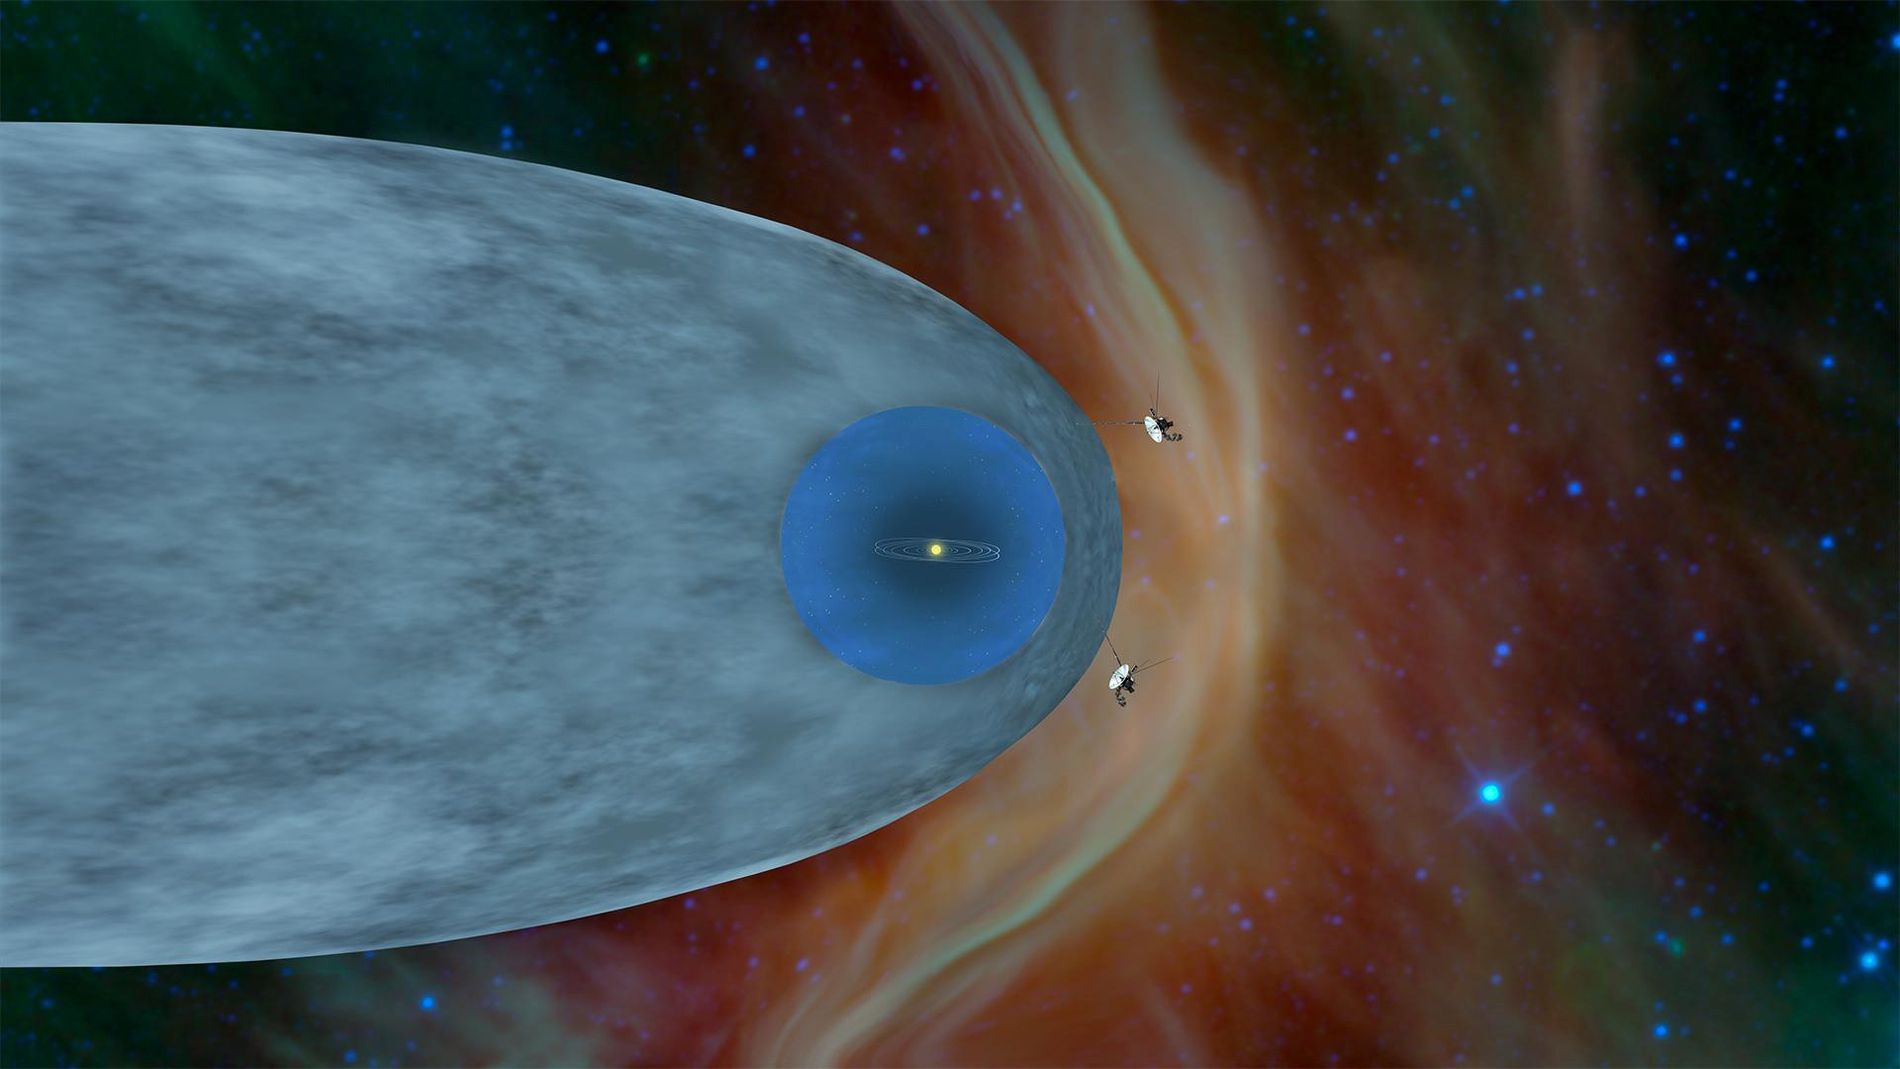 An illustration shows the position of NASA's Voyager 1 and Voyager 2 probes outside of the heliosphere, a protective bubble created by the sun that extends well past the orbit of Pluto.